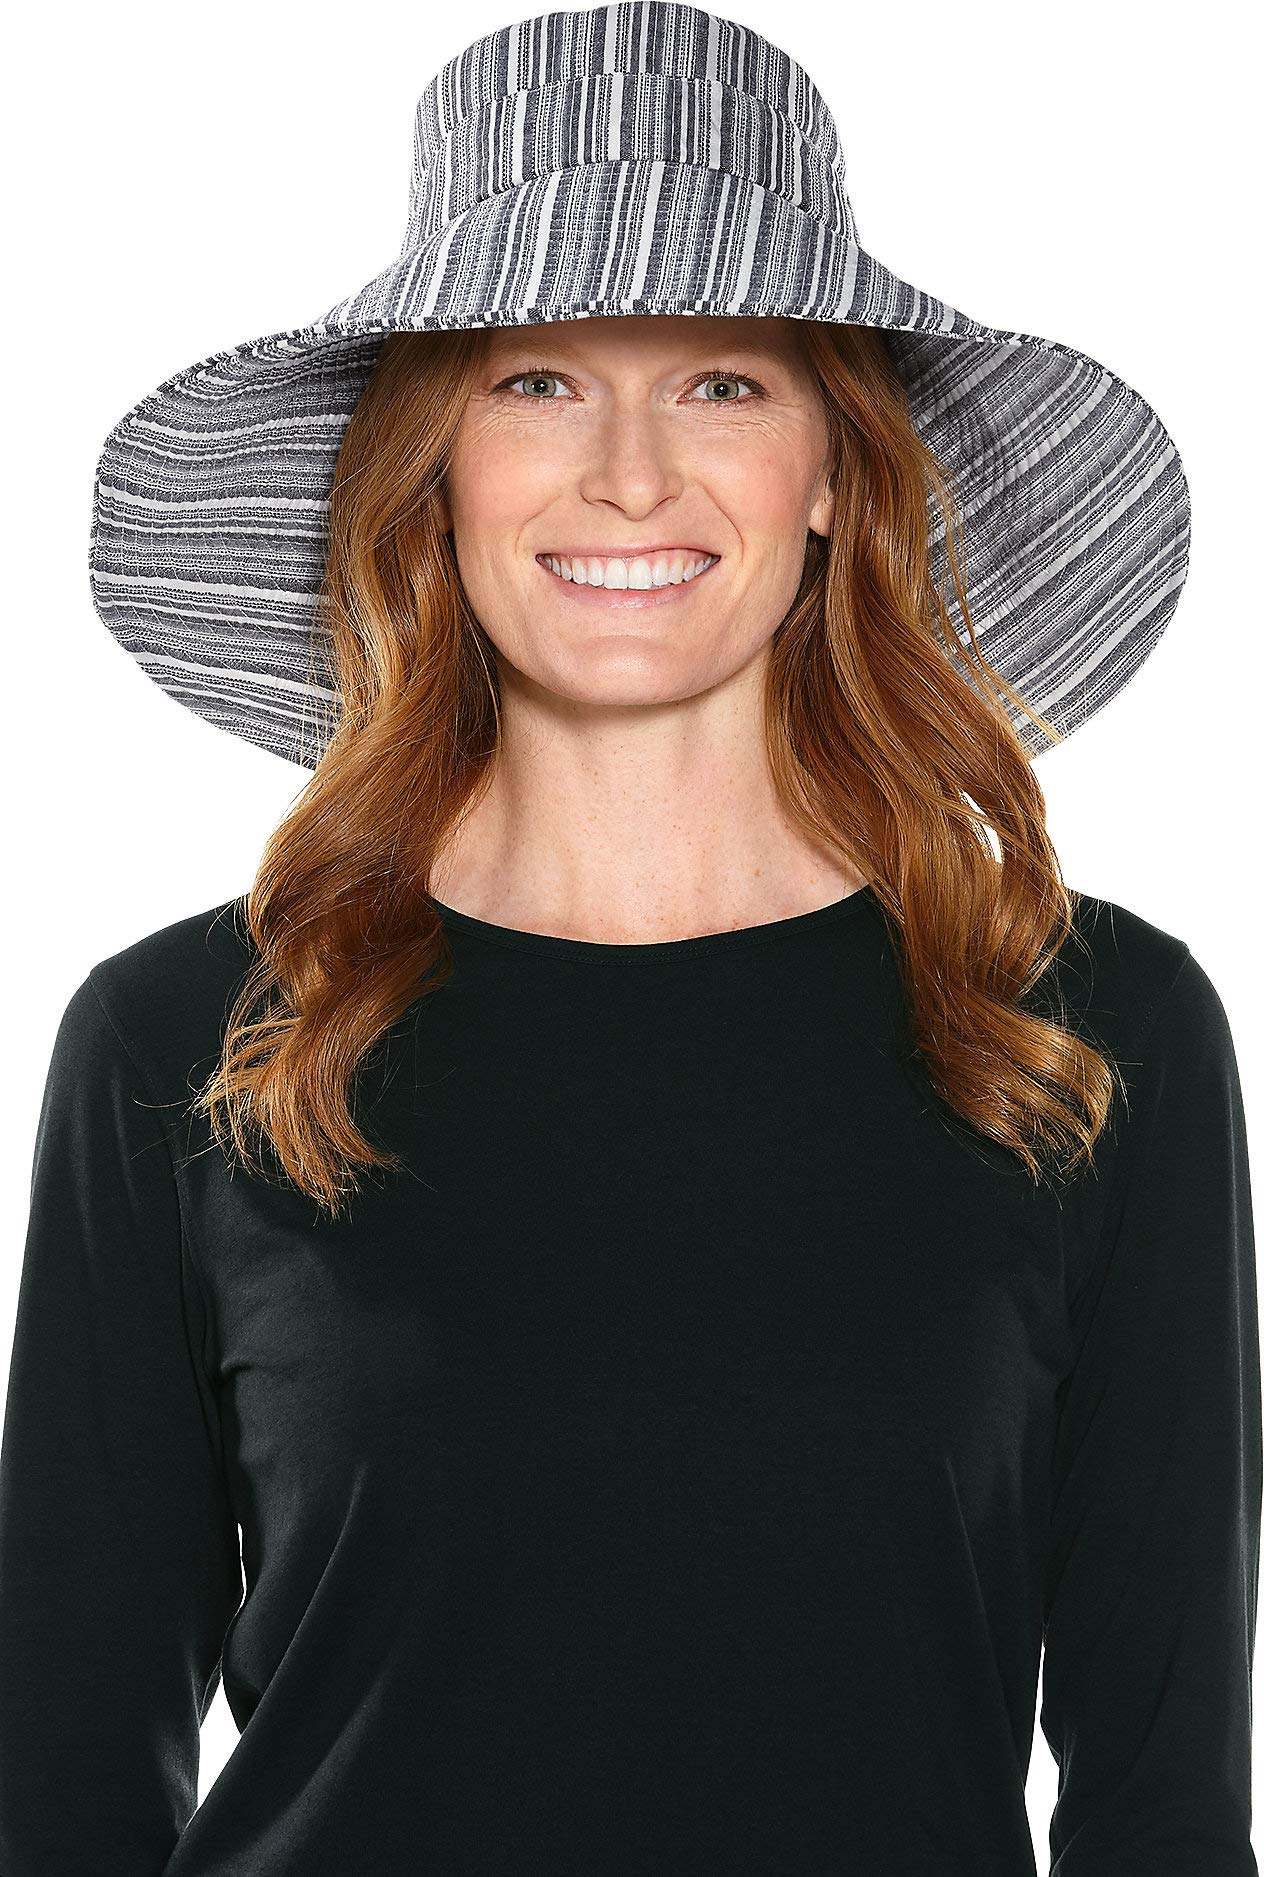 Coolibar UPF 50+ Women's Beach Hat - Sun Protective (One Size- Black/White Small Stripe)